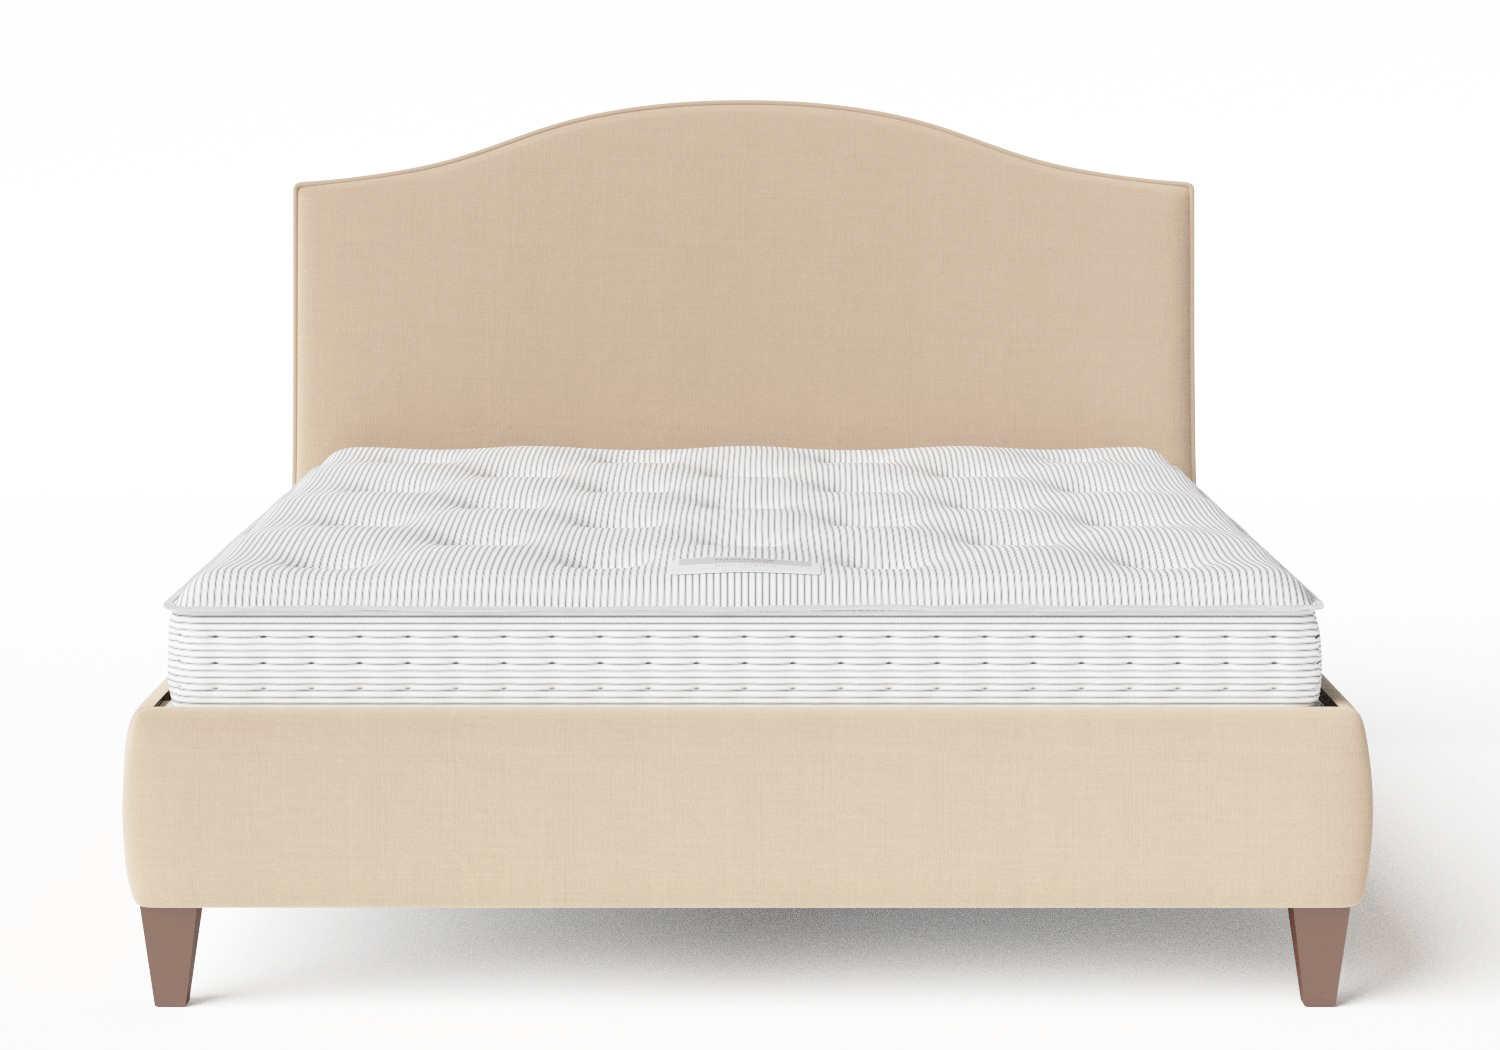 Daniella Upholstered bed in Natural fabric with piping shown with Juno 1 mattress